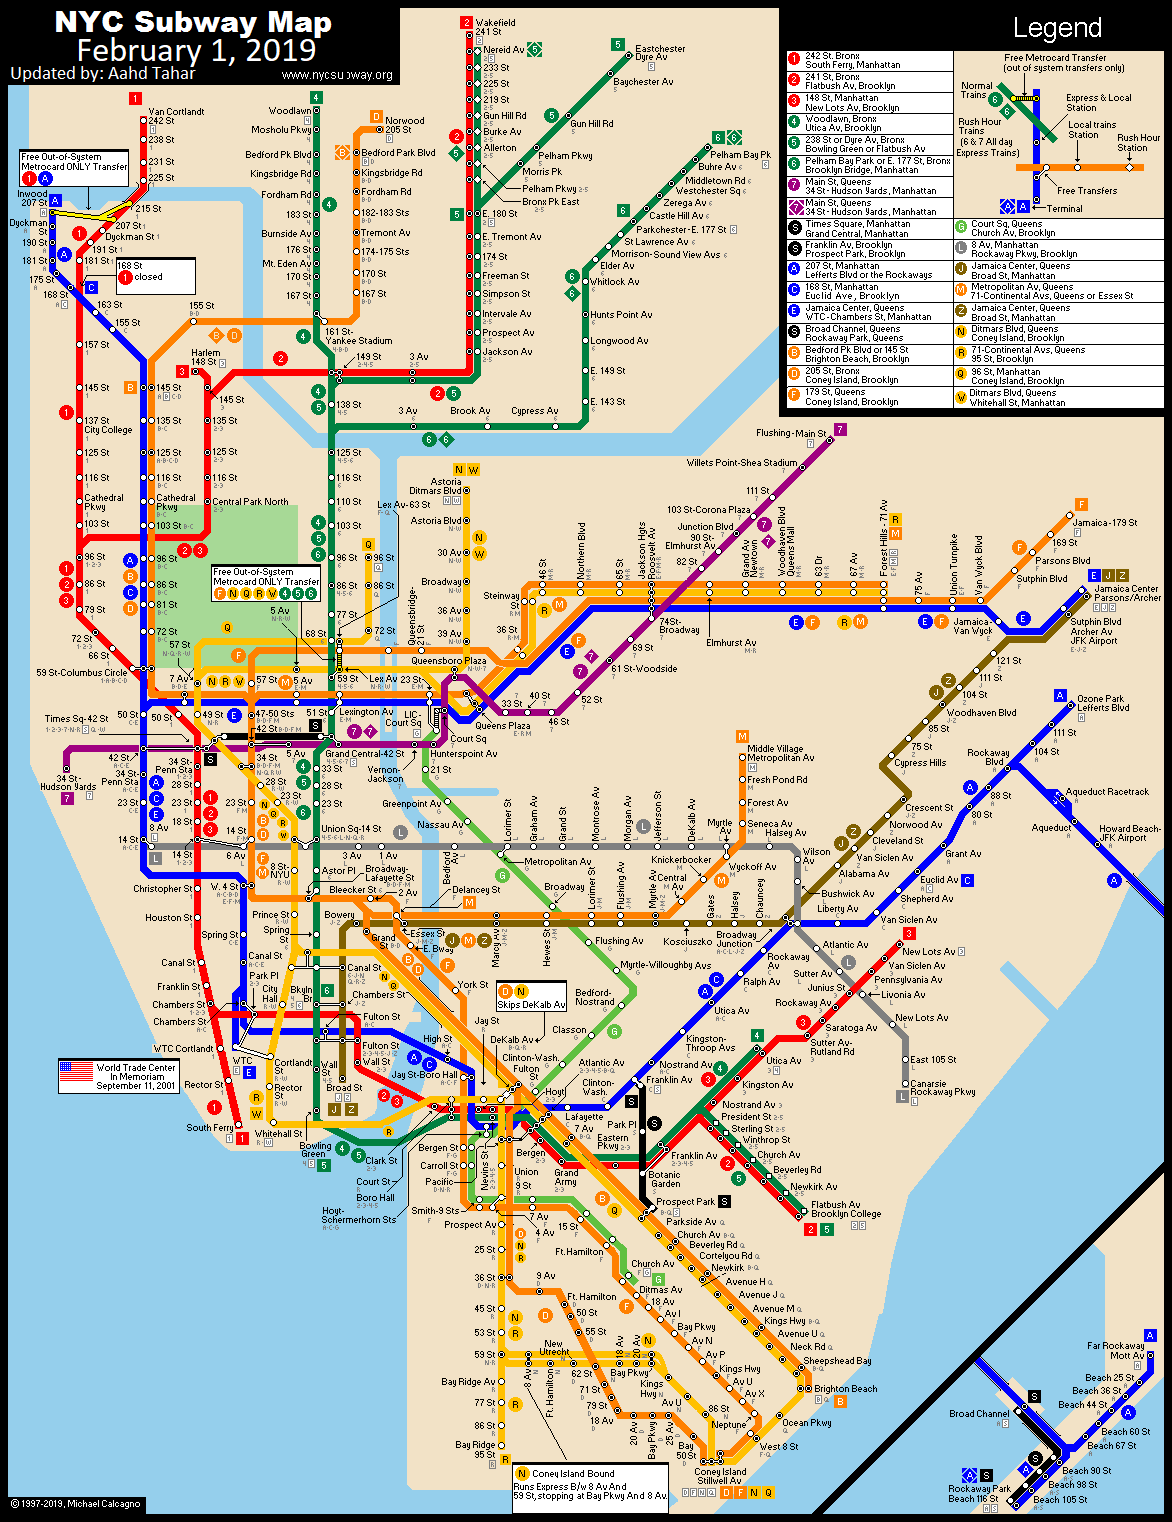 N R Subway Map Nyc.Www Nycsubway Org New York City Subway Route Map By Michael Calcagno